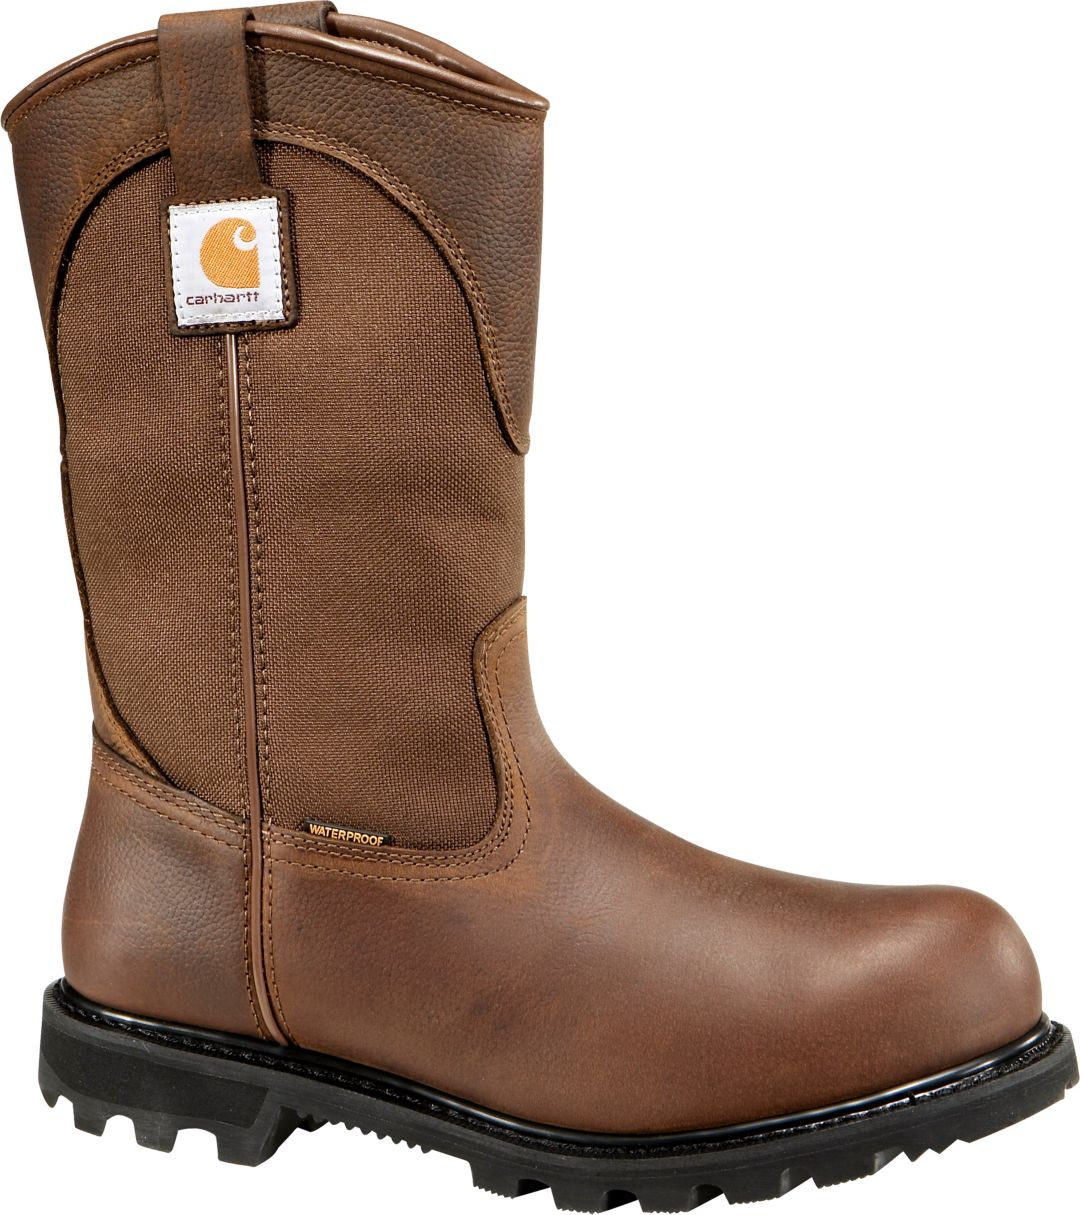 "3db8de3b47c Carhartt Men's Wellington 11"" Waterproof Safety Toe Work Boots"